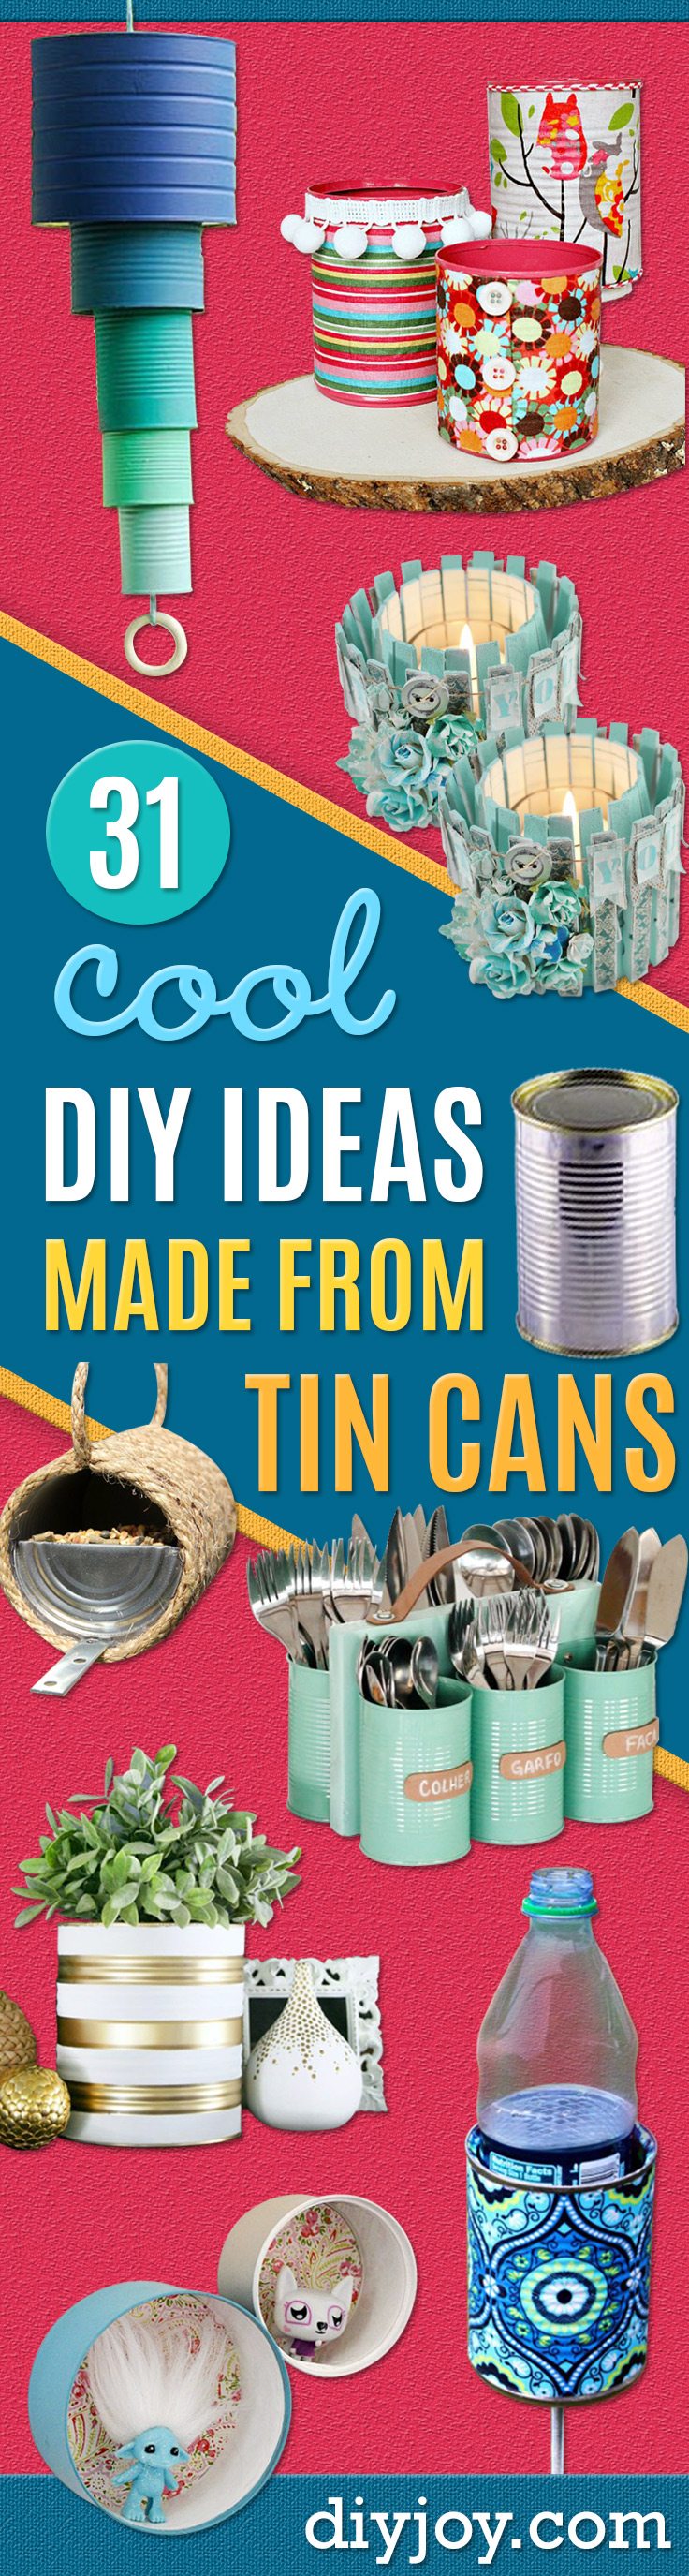 Tin Can Crafts - DIY Ideas With Old Tin Cans - Rustic Farmhouse Decor Tutorials and Projects Made With An Old Tin Can - Easy Vintage Shelving, Wall Art, Picture Frames and Home Decor for Kitchen, Living Room and Bathroom - Creative Country Crafts, Craft Room Storage, Silverware Holder, Rustic Wall Art and Accessories to Make and Sell